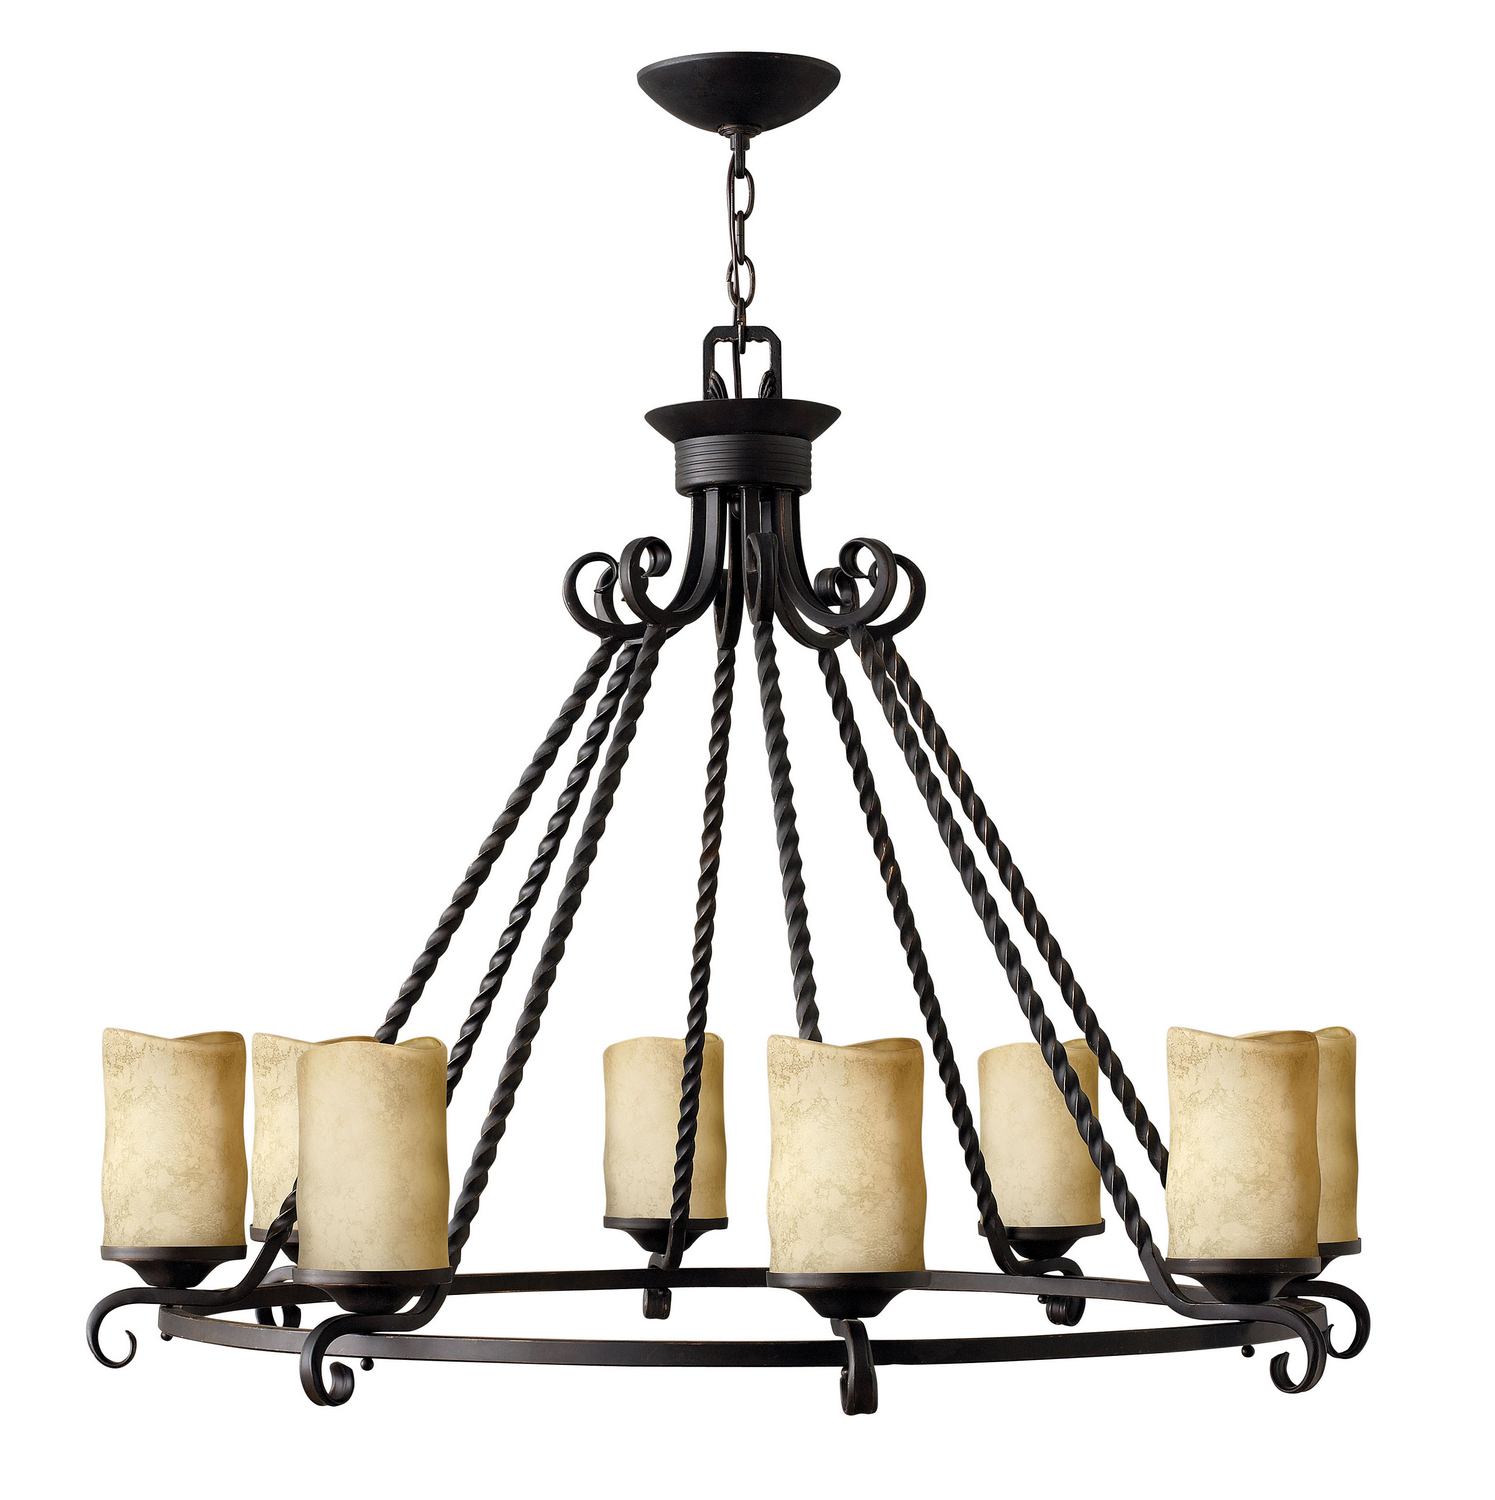 Eight Light Foyer Pendant from the Casa collection by Hinkley 4308OL